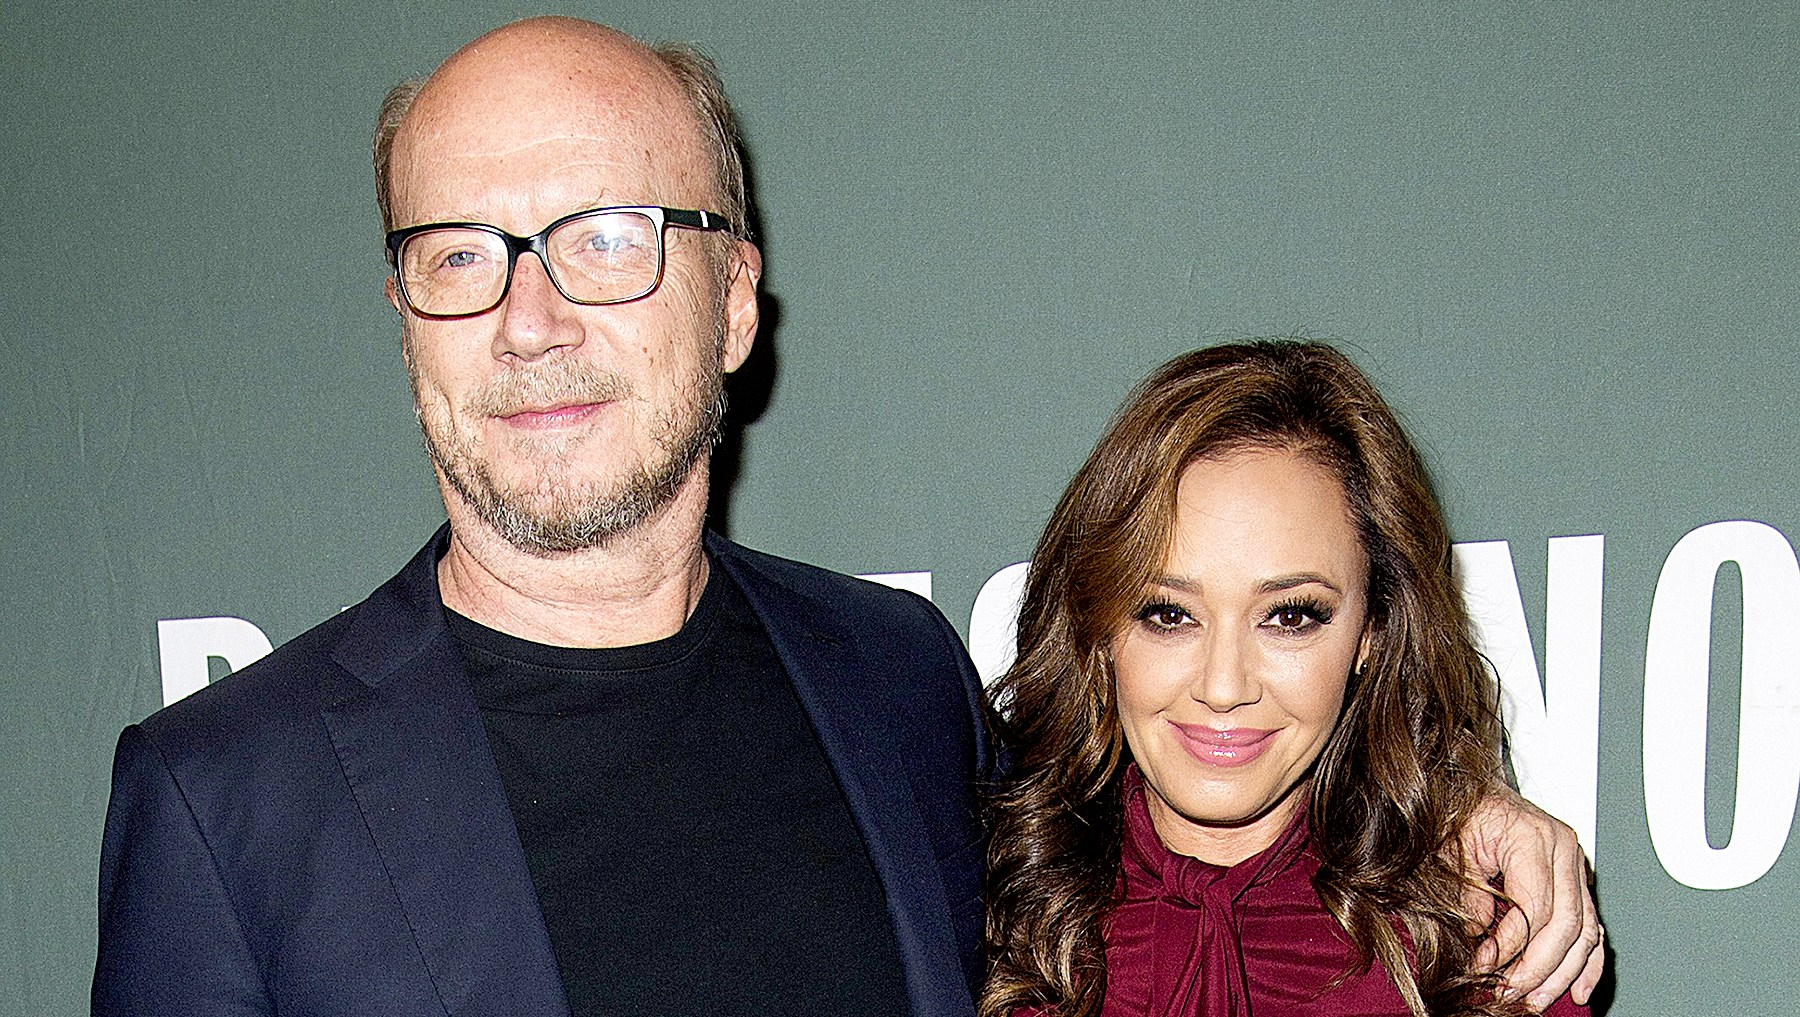 Leah-Remini-Defends-Director-Paul-Haggis